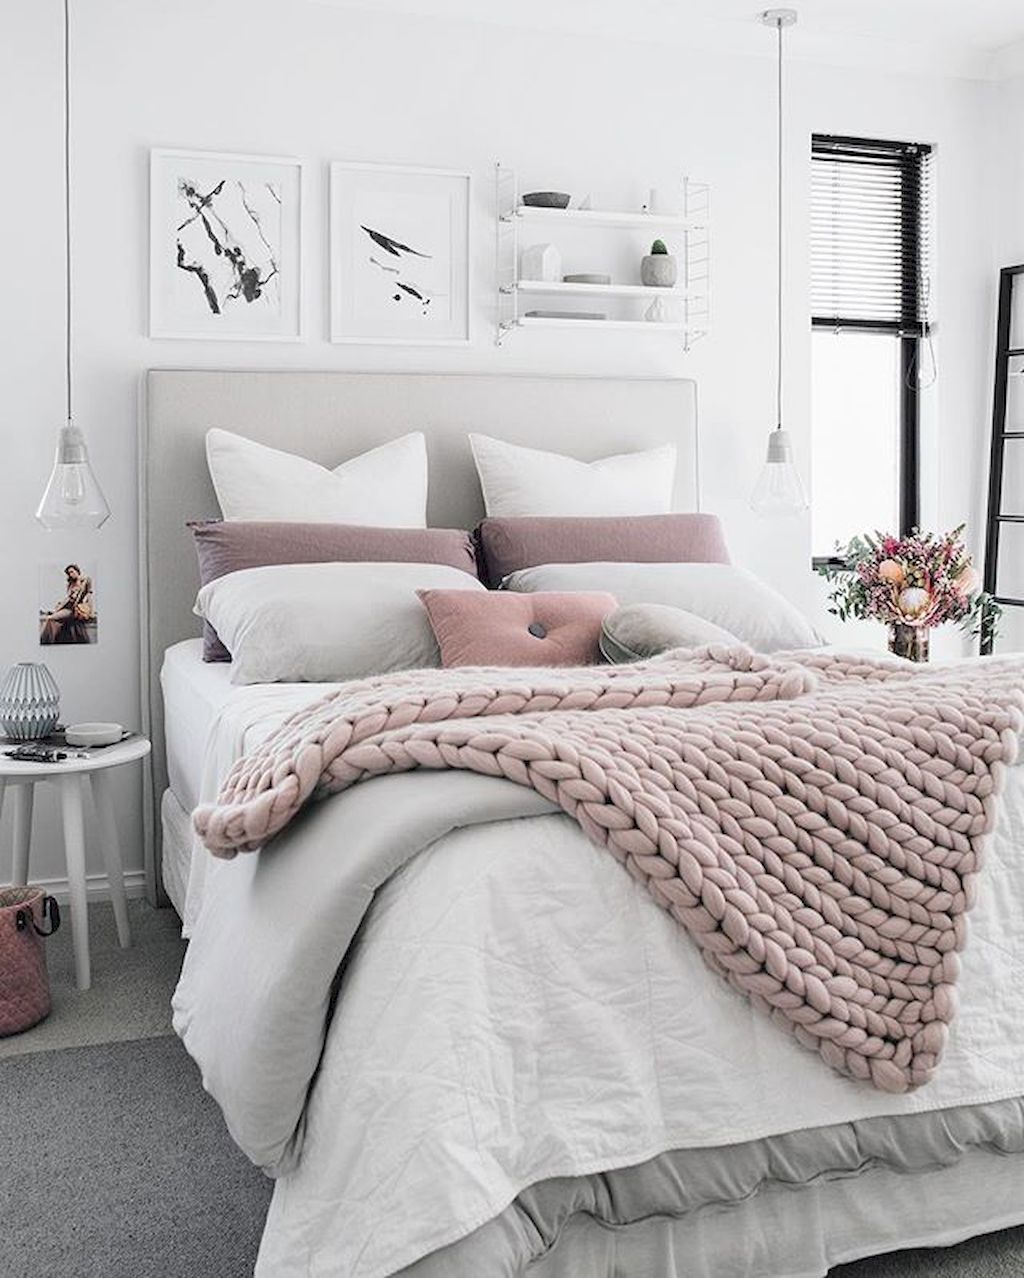 Couples apartment decorating ideas on a budget (4) | Blush pink ...